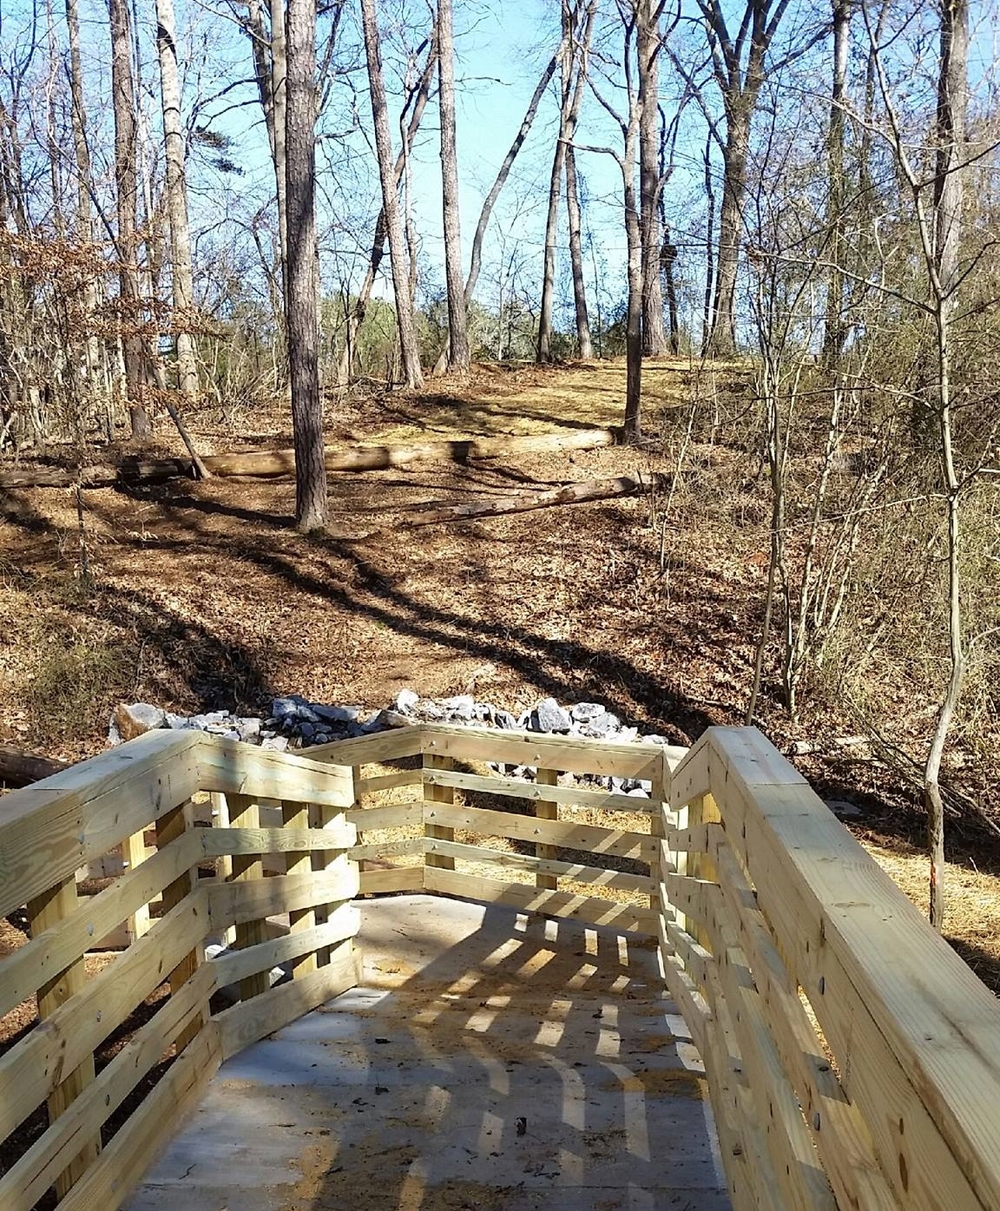 The NEW BRIDGE LEADS TO NEW TRAILS